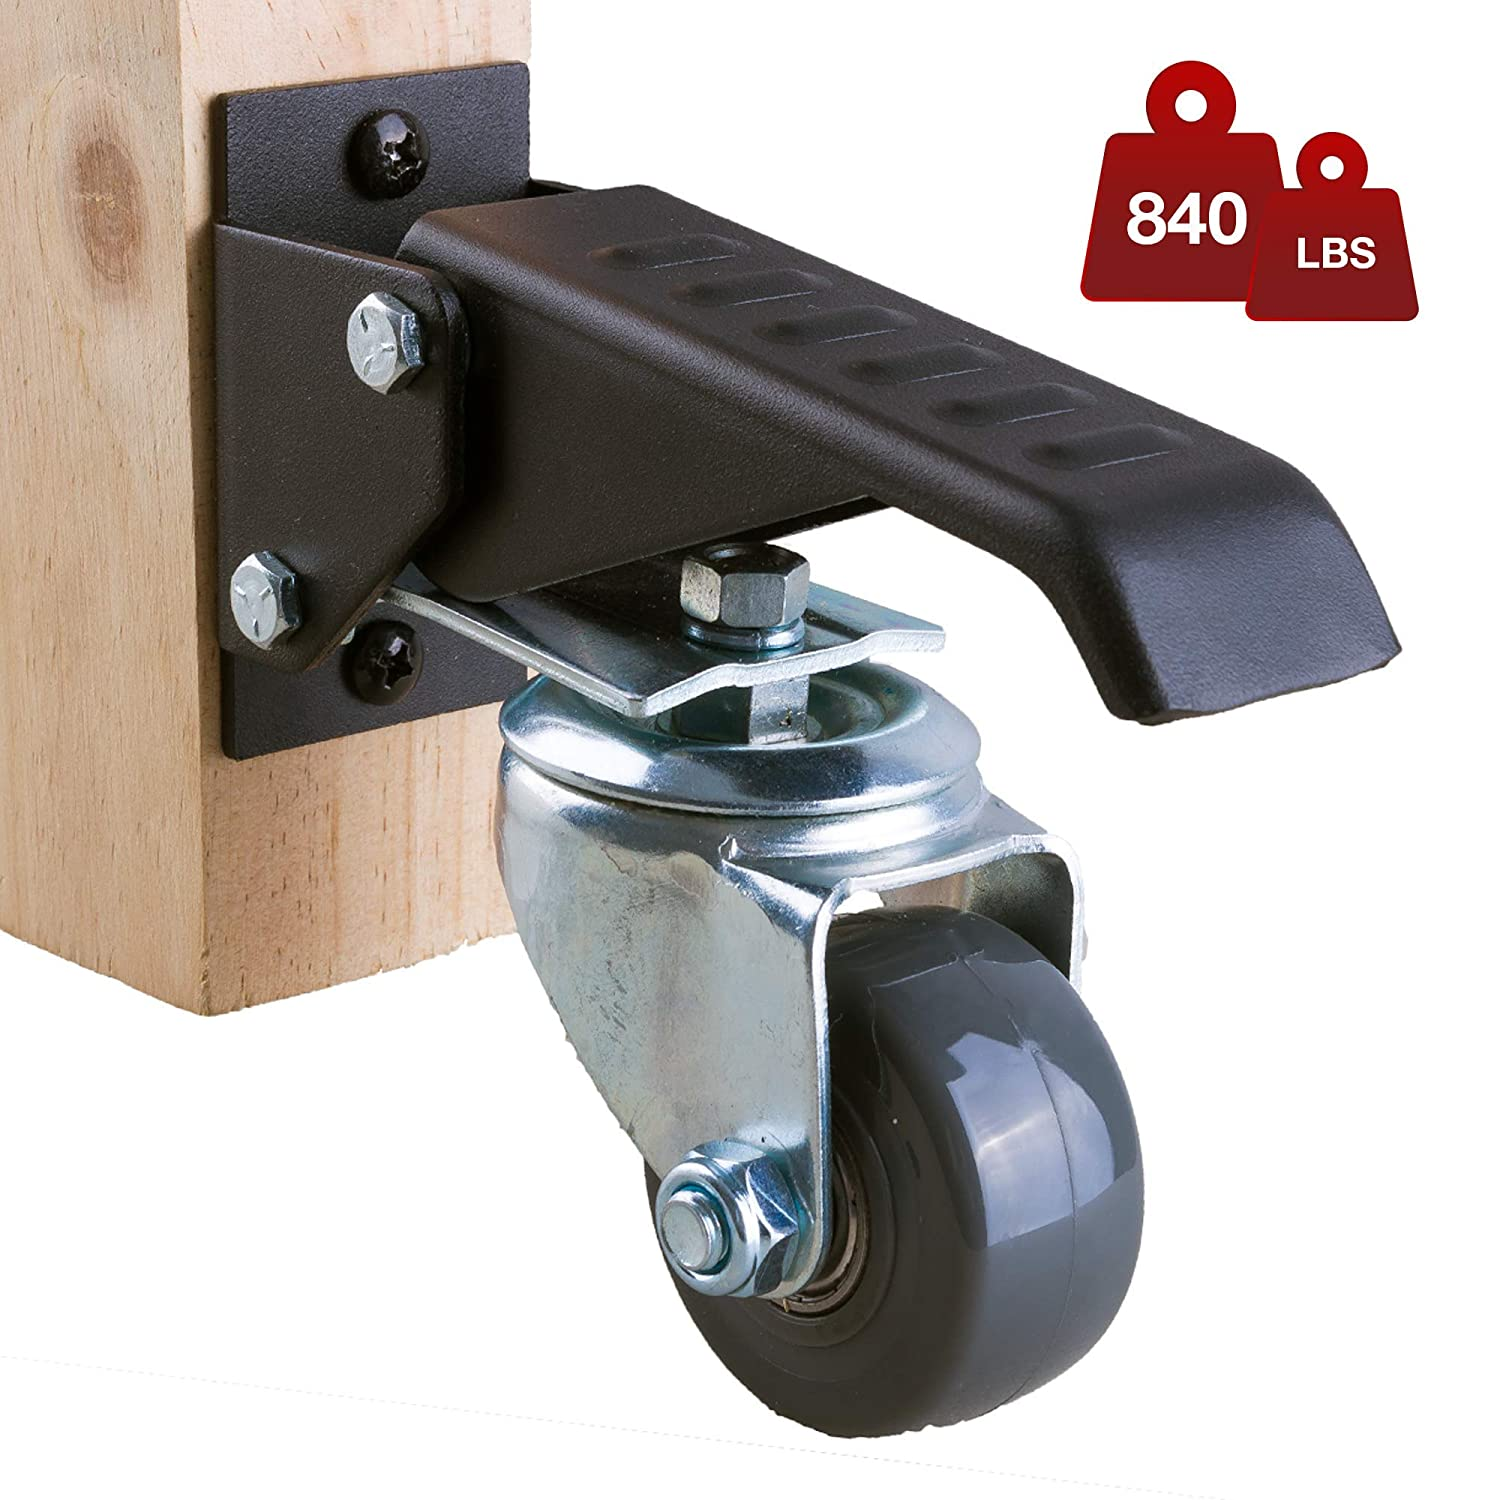 Workbench Casters Kit 4 Heavy Duty Retractable Wheels for Machinery and Tables